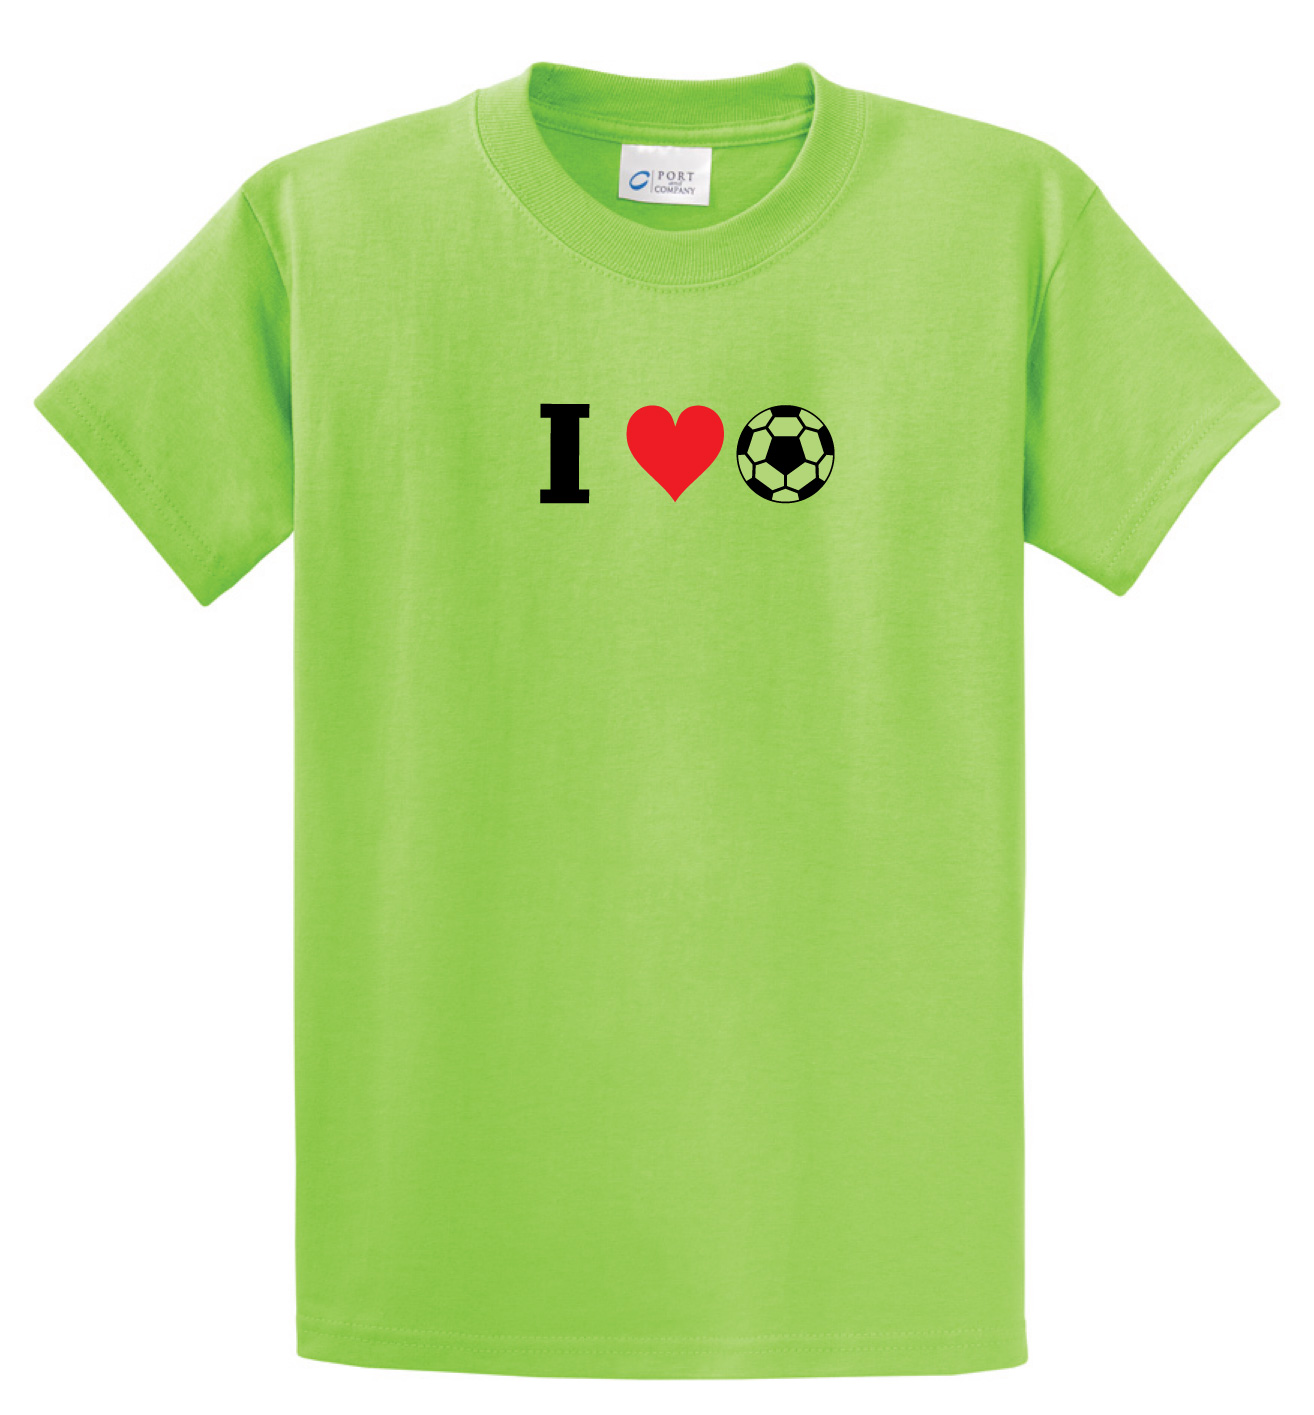 I Love Soccer tee in lime